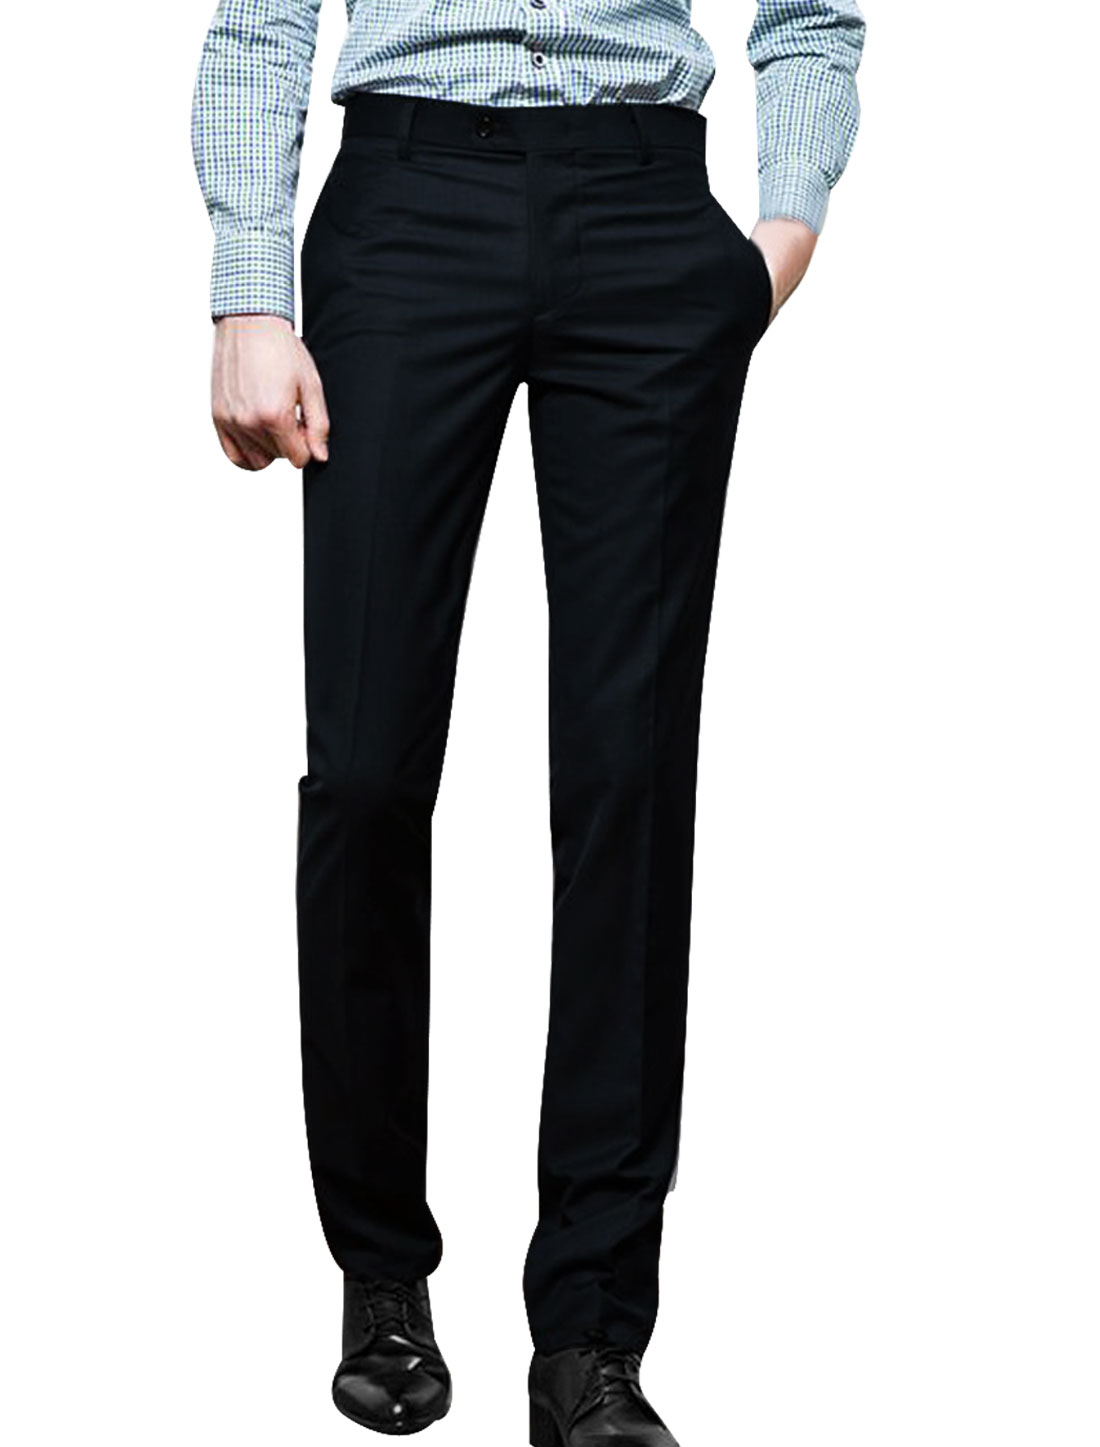 Mens Dark Blue Concealed Zipper Side Pockets Details Pants W34